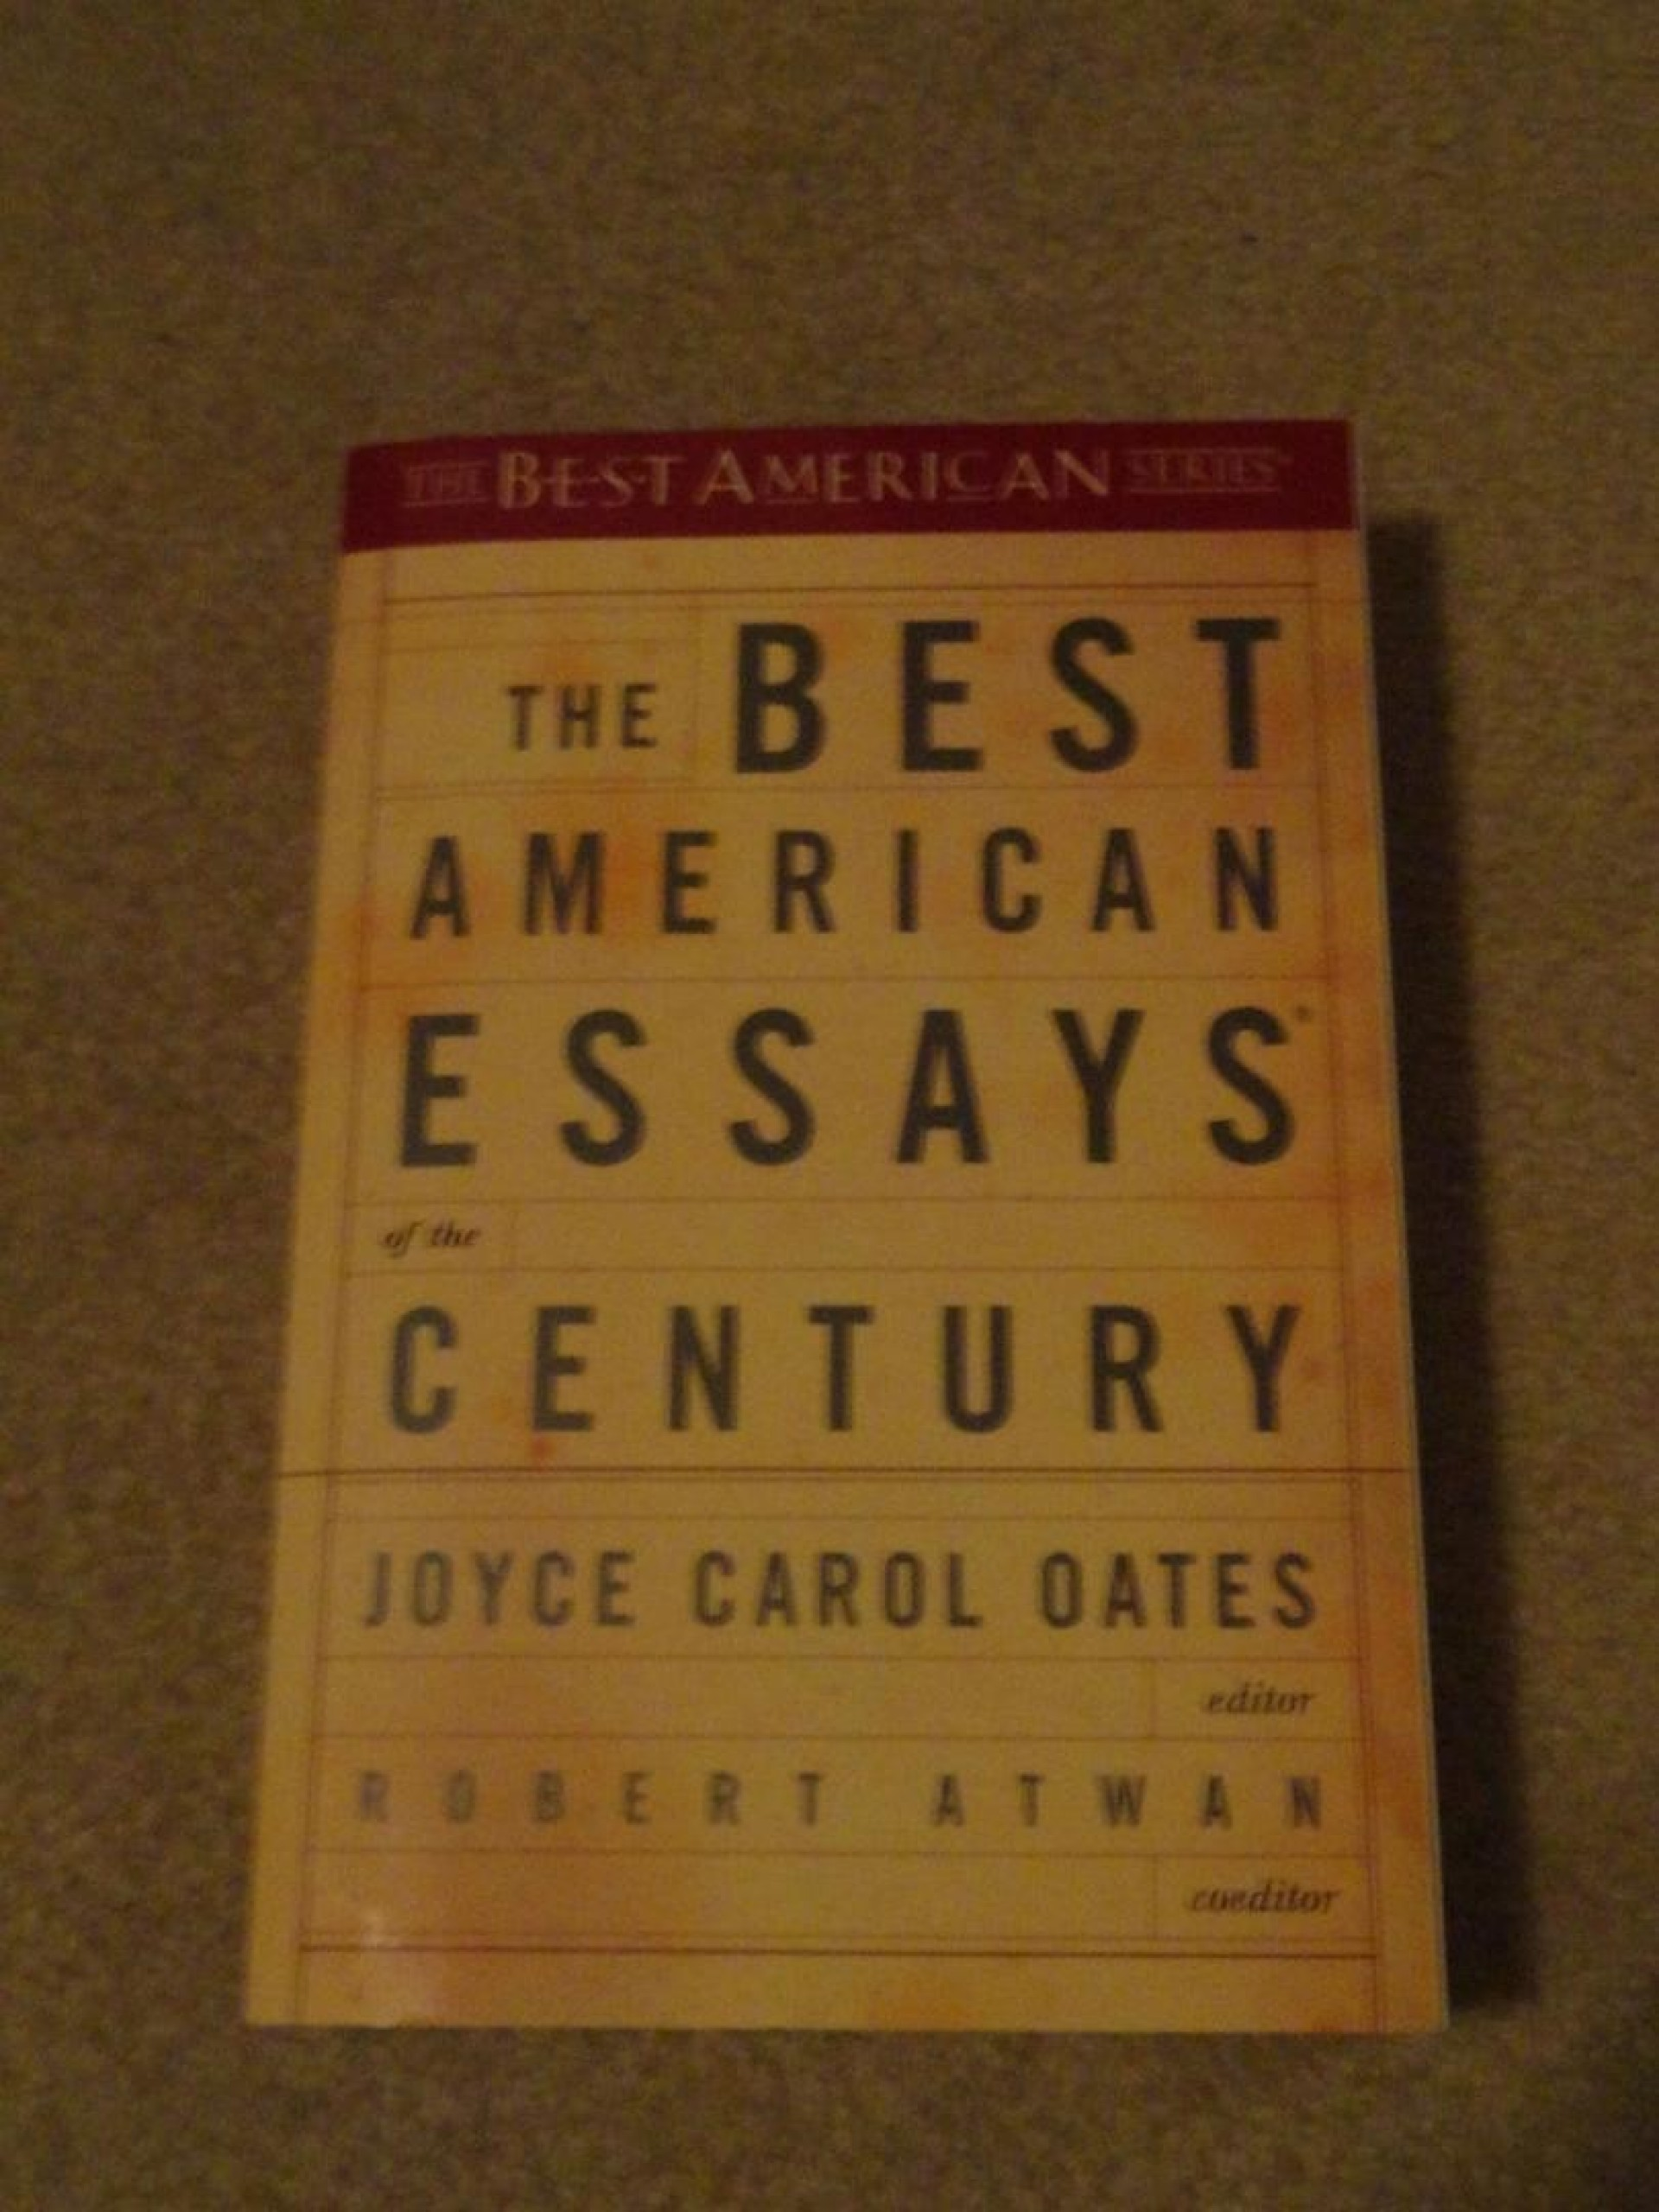 007 The Best American Essays Of Century Essay Example 1 997b8cd7358e6230fa01ed6b061067a8 Imposing Contents Summaries 1920